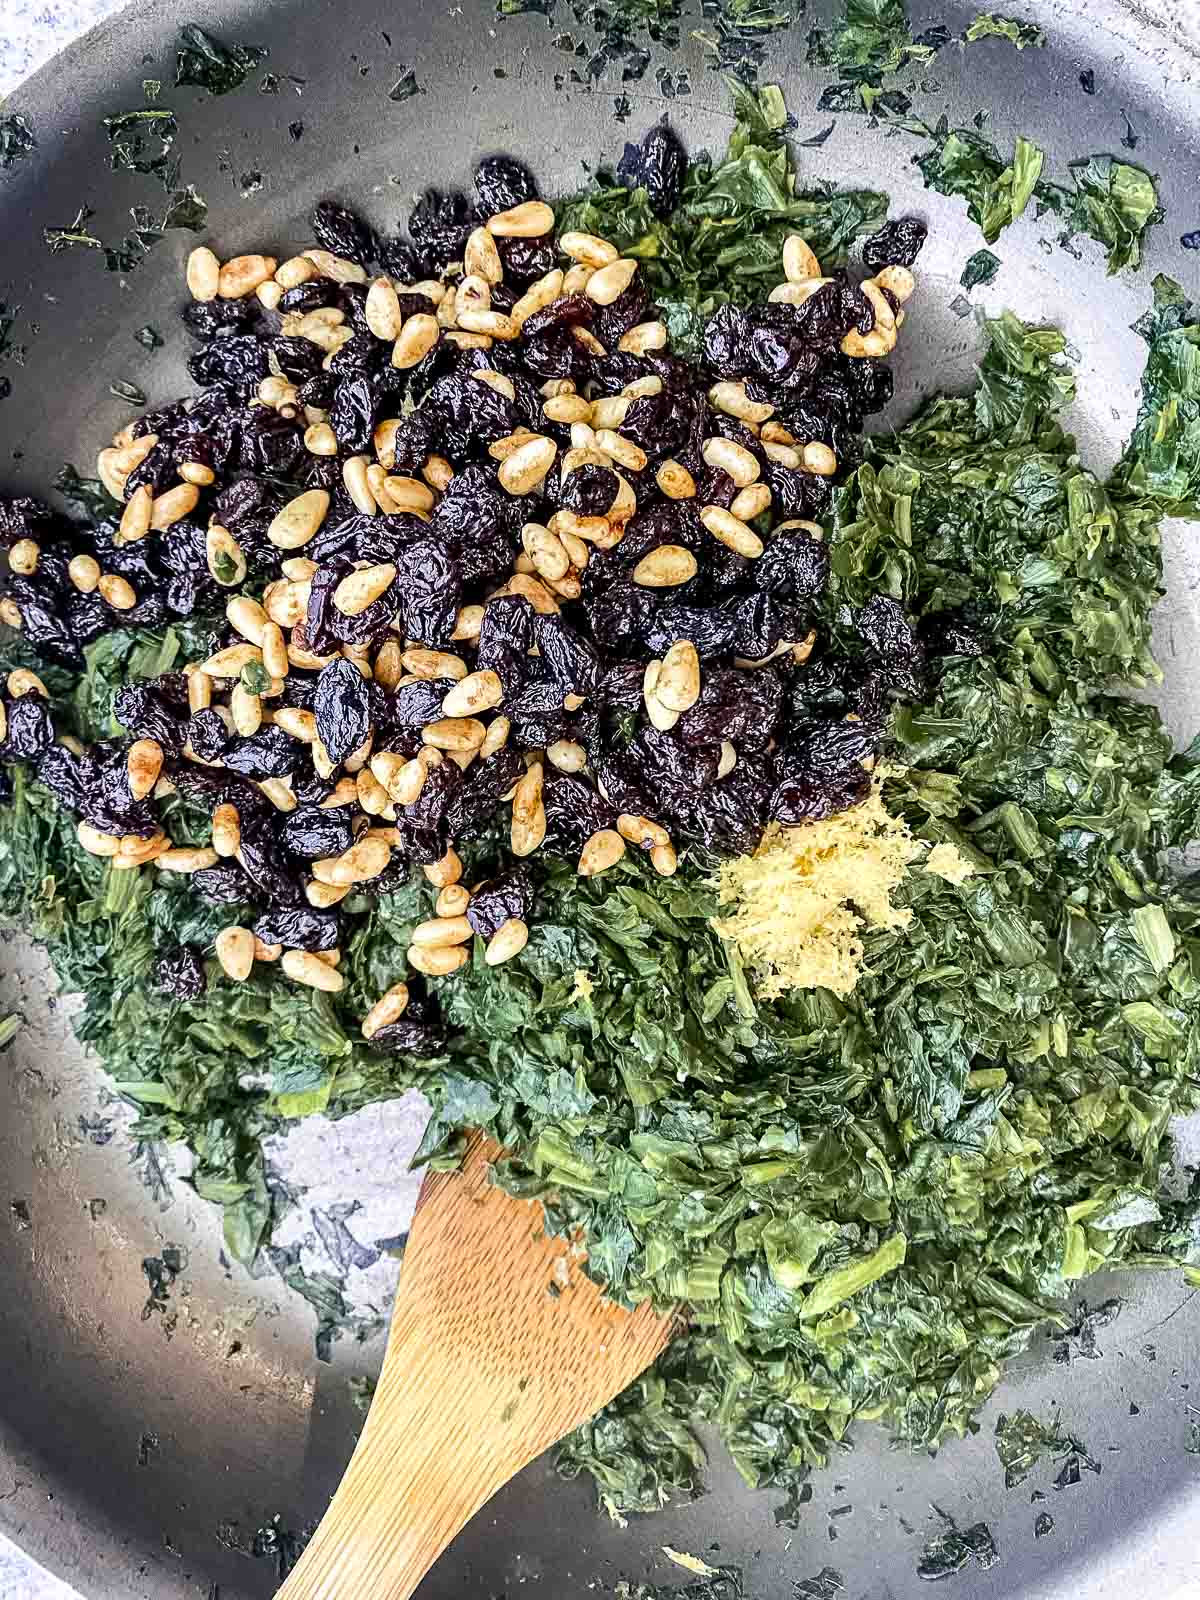 cooked spinach, pine nuts, raisins and lemon zest in a nonstick skillet